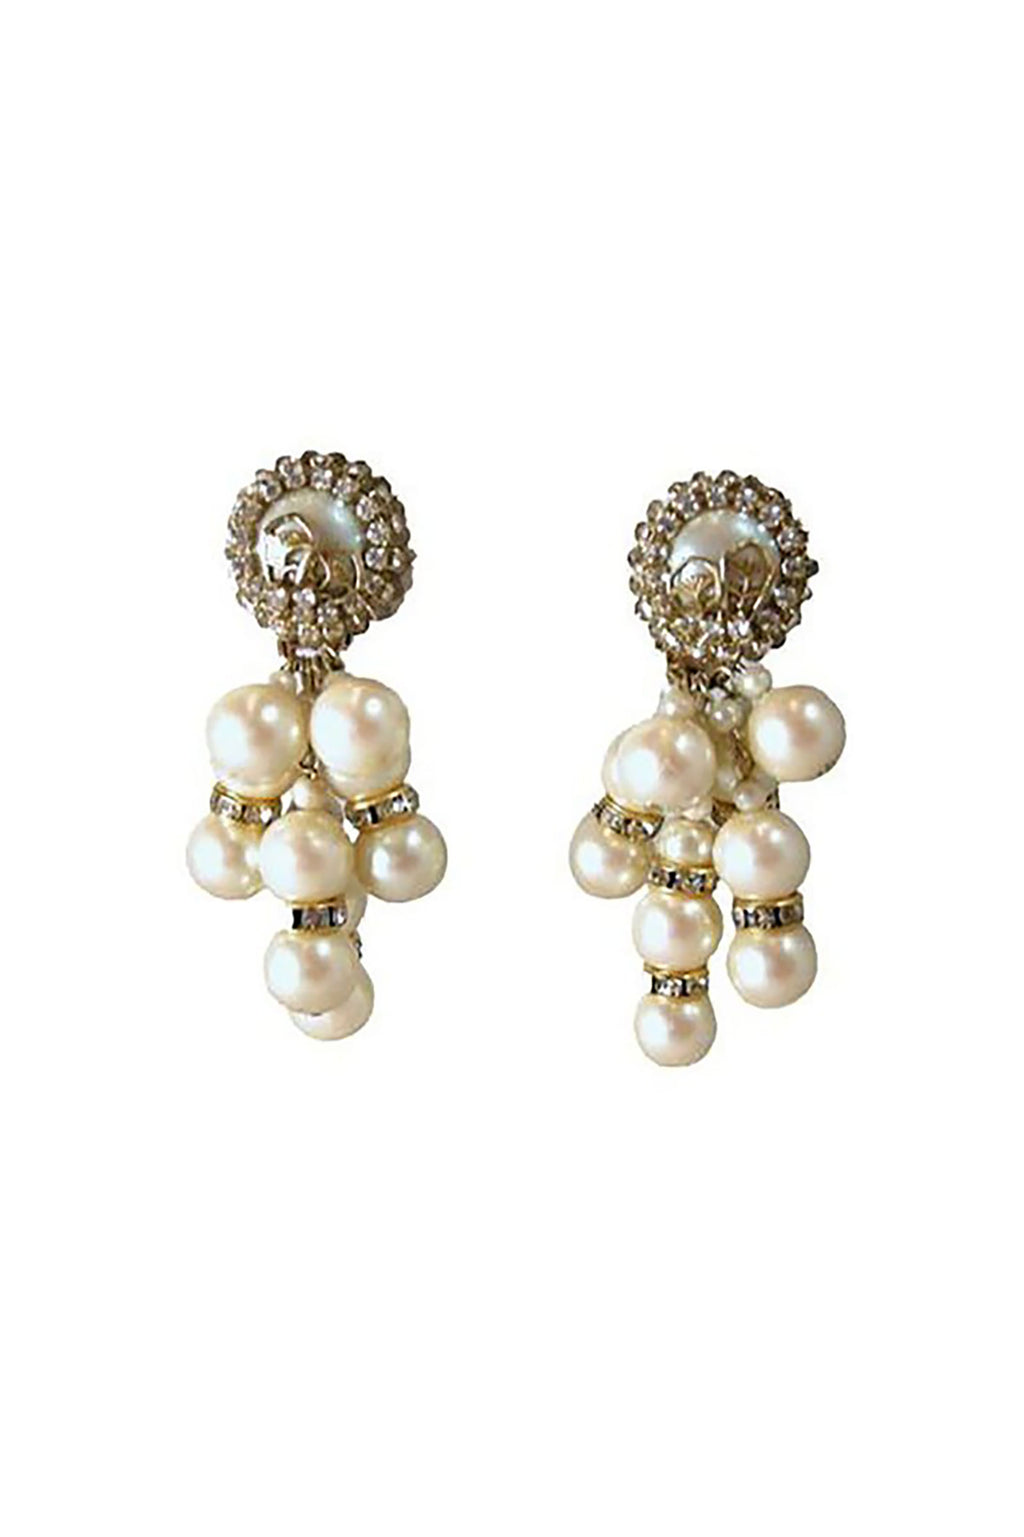 Vintage Signed DeMario Faux Pearls and Crystal Drop Earring